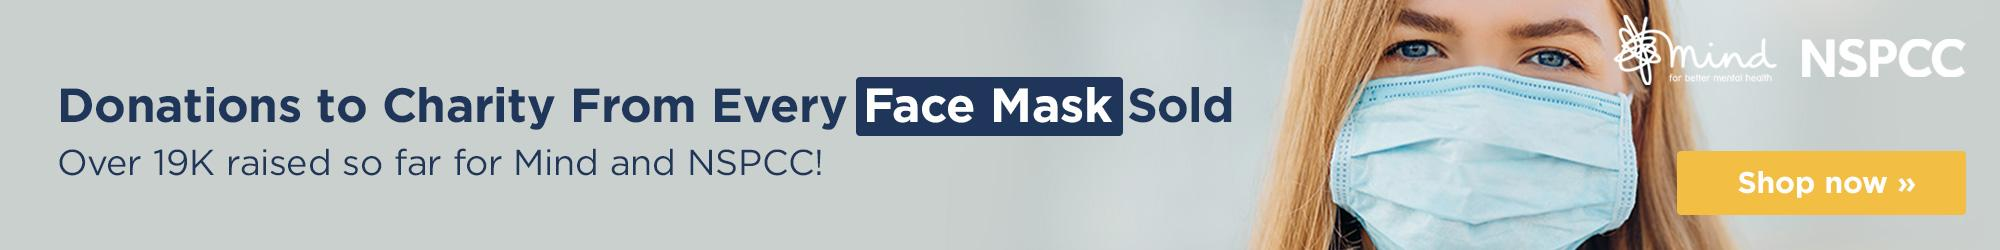 Donations to charity from every face mask sold. Over £19k raised so far! Shop now